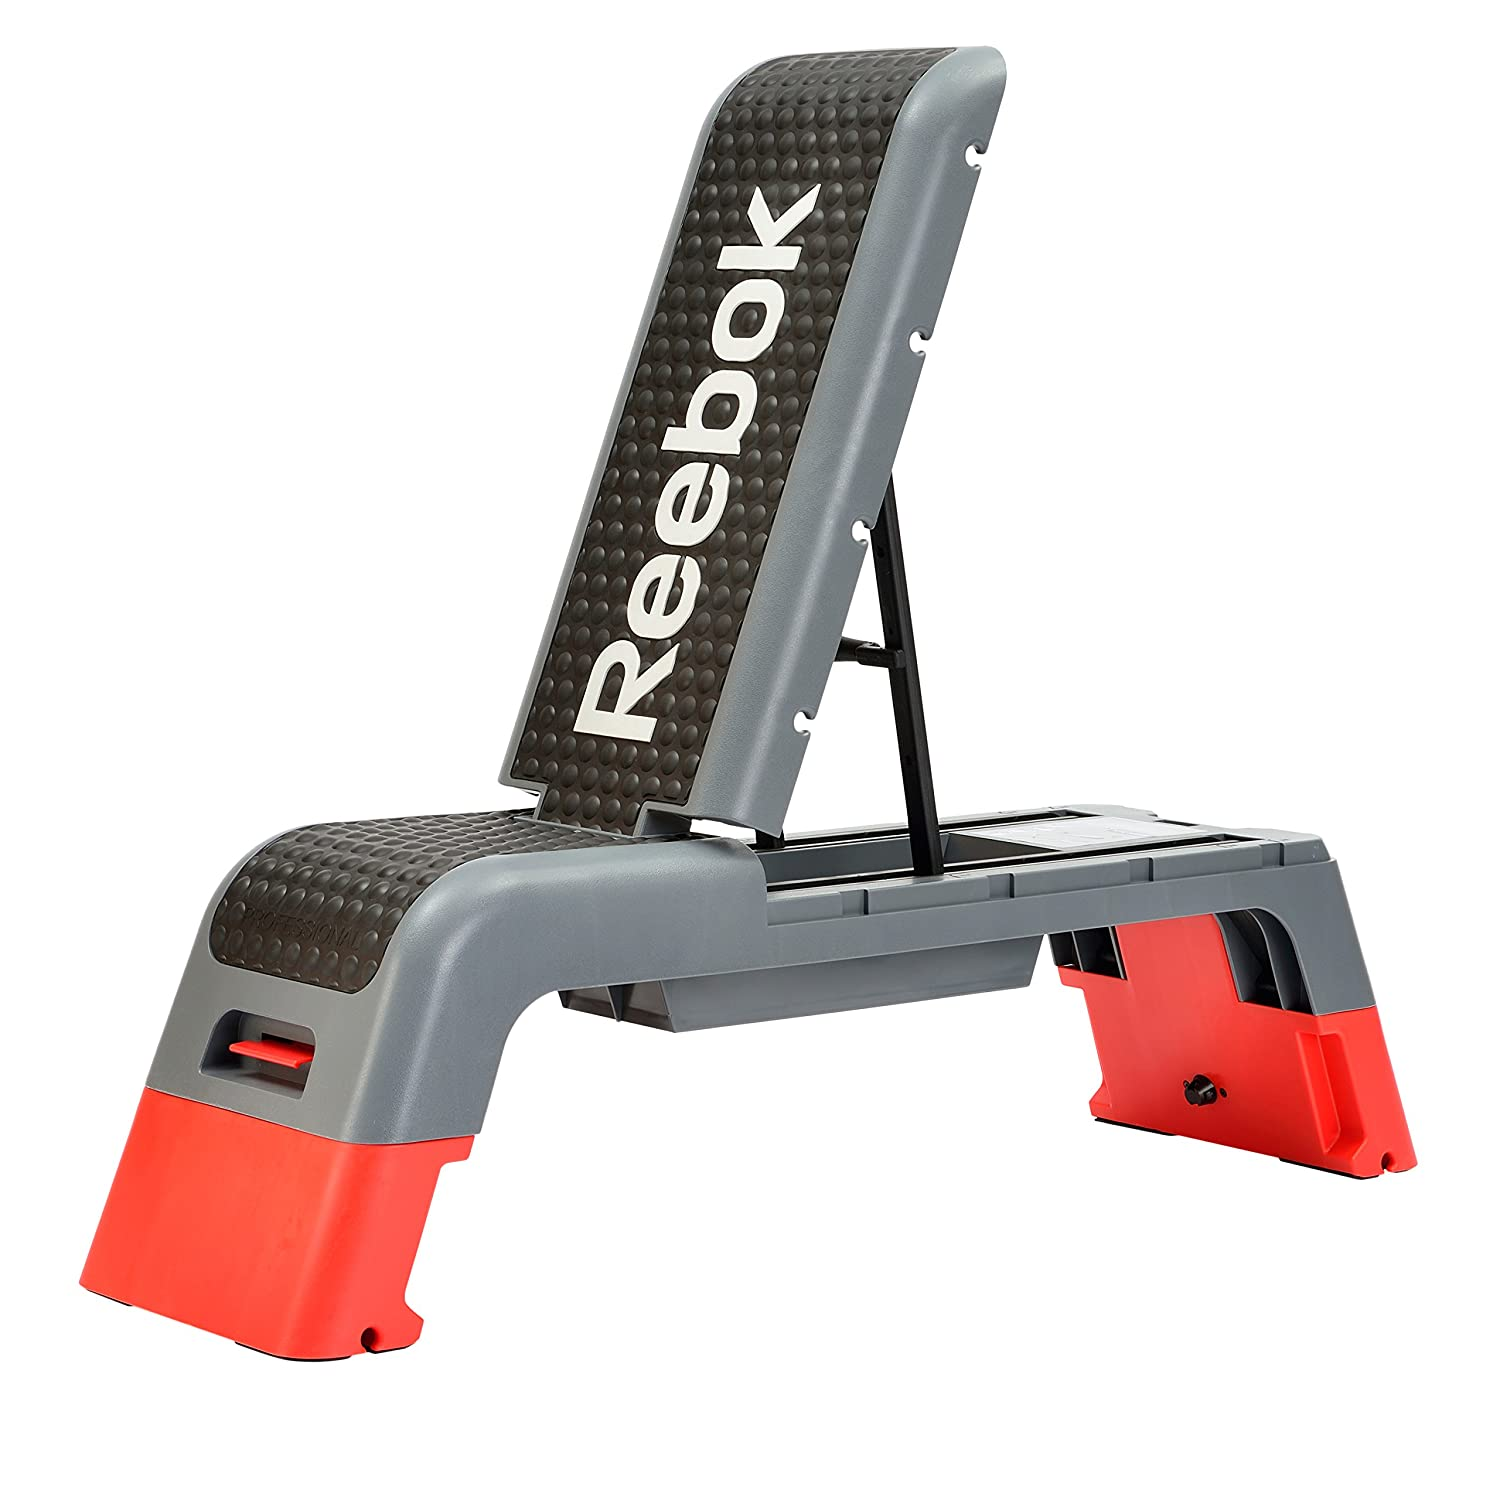 10 Best Weight Benches To Buy In 2018 Free Weights Bench Gfid71 If You Need A That Is Portable And Upholstery Maintenance Then The Reebok Professional Deck Workout Your First On List